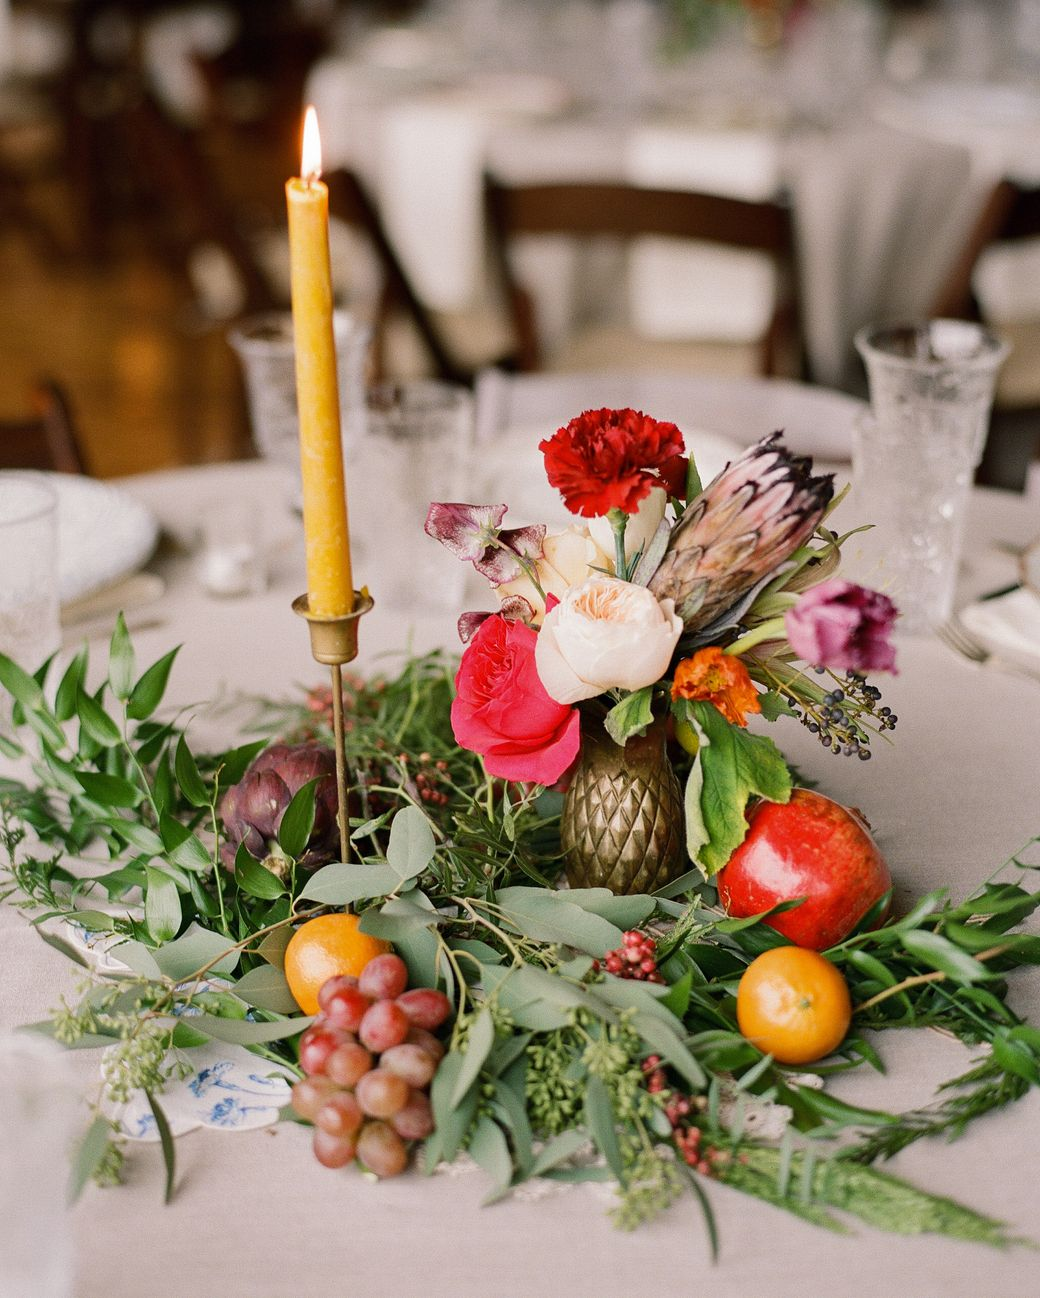 pinterest wedding table decorations candles%0A    Wedding Centerpieces Bursting with Fruits and Vegetables